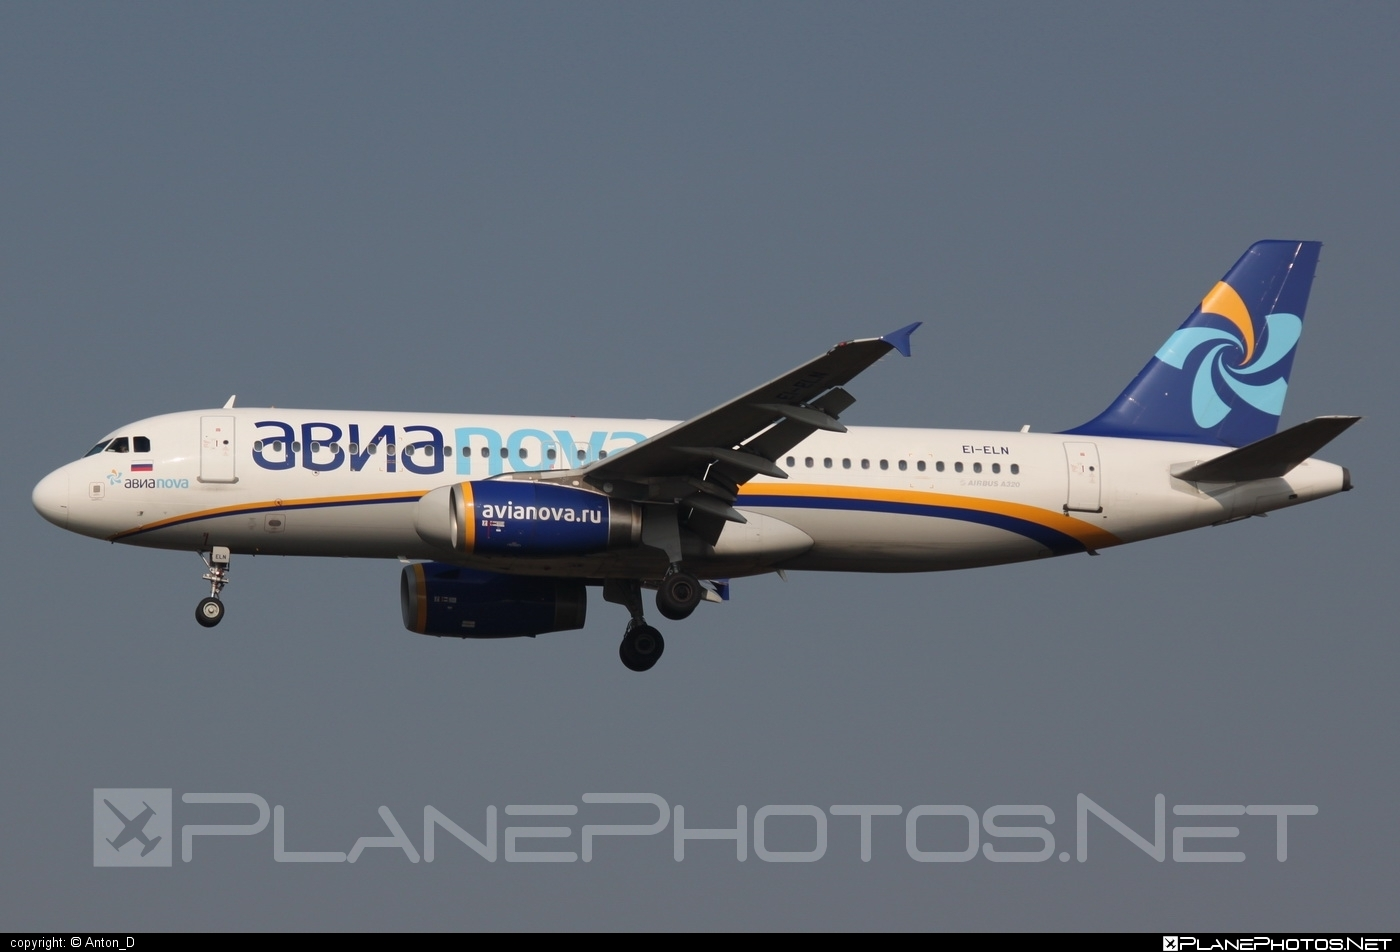 Airbus A320-232 - EI-ELN operated by Avianova #a320 #a320family #airbus #airbus320